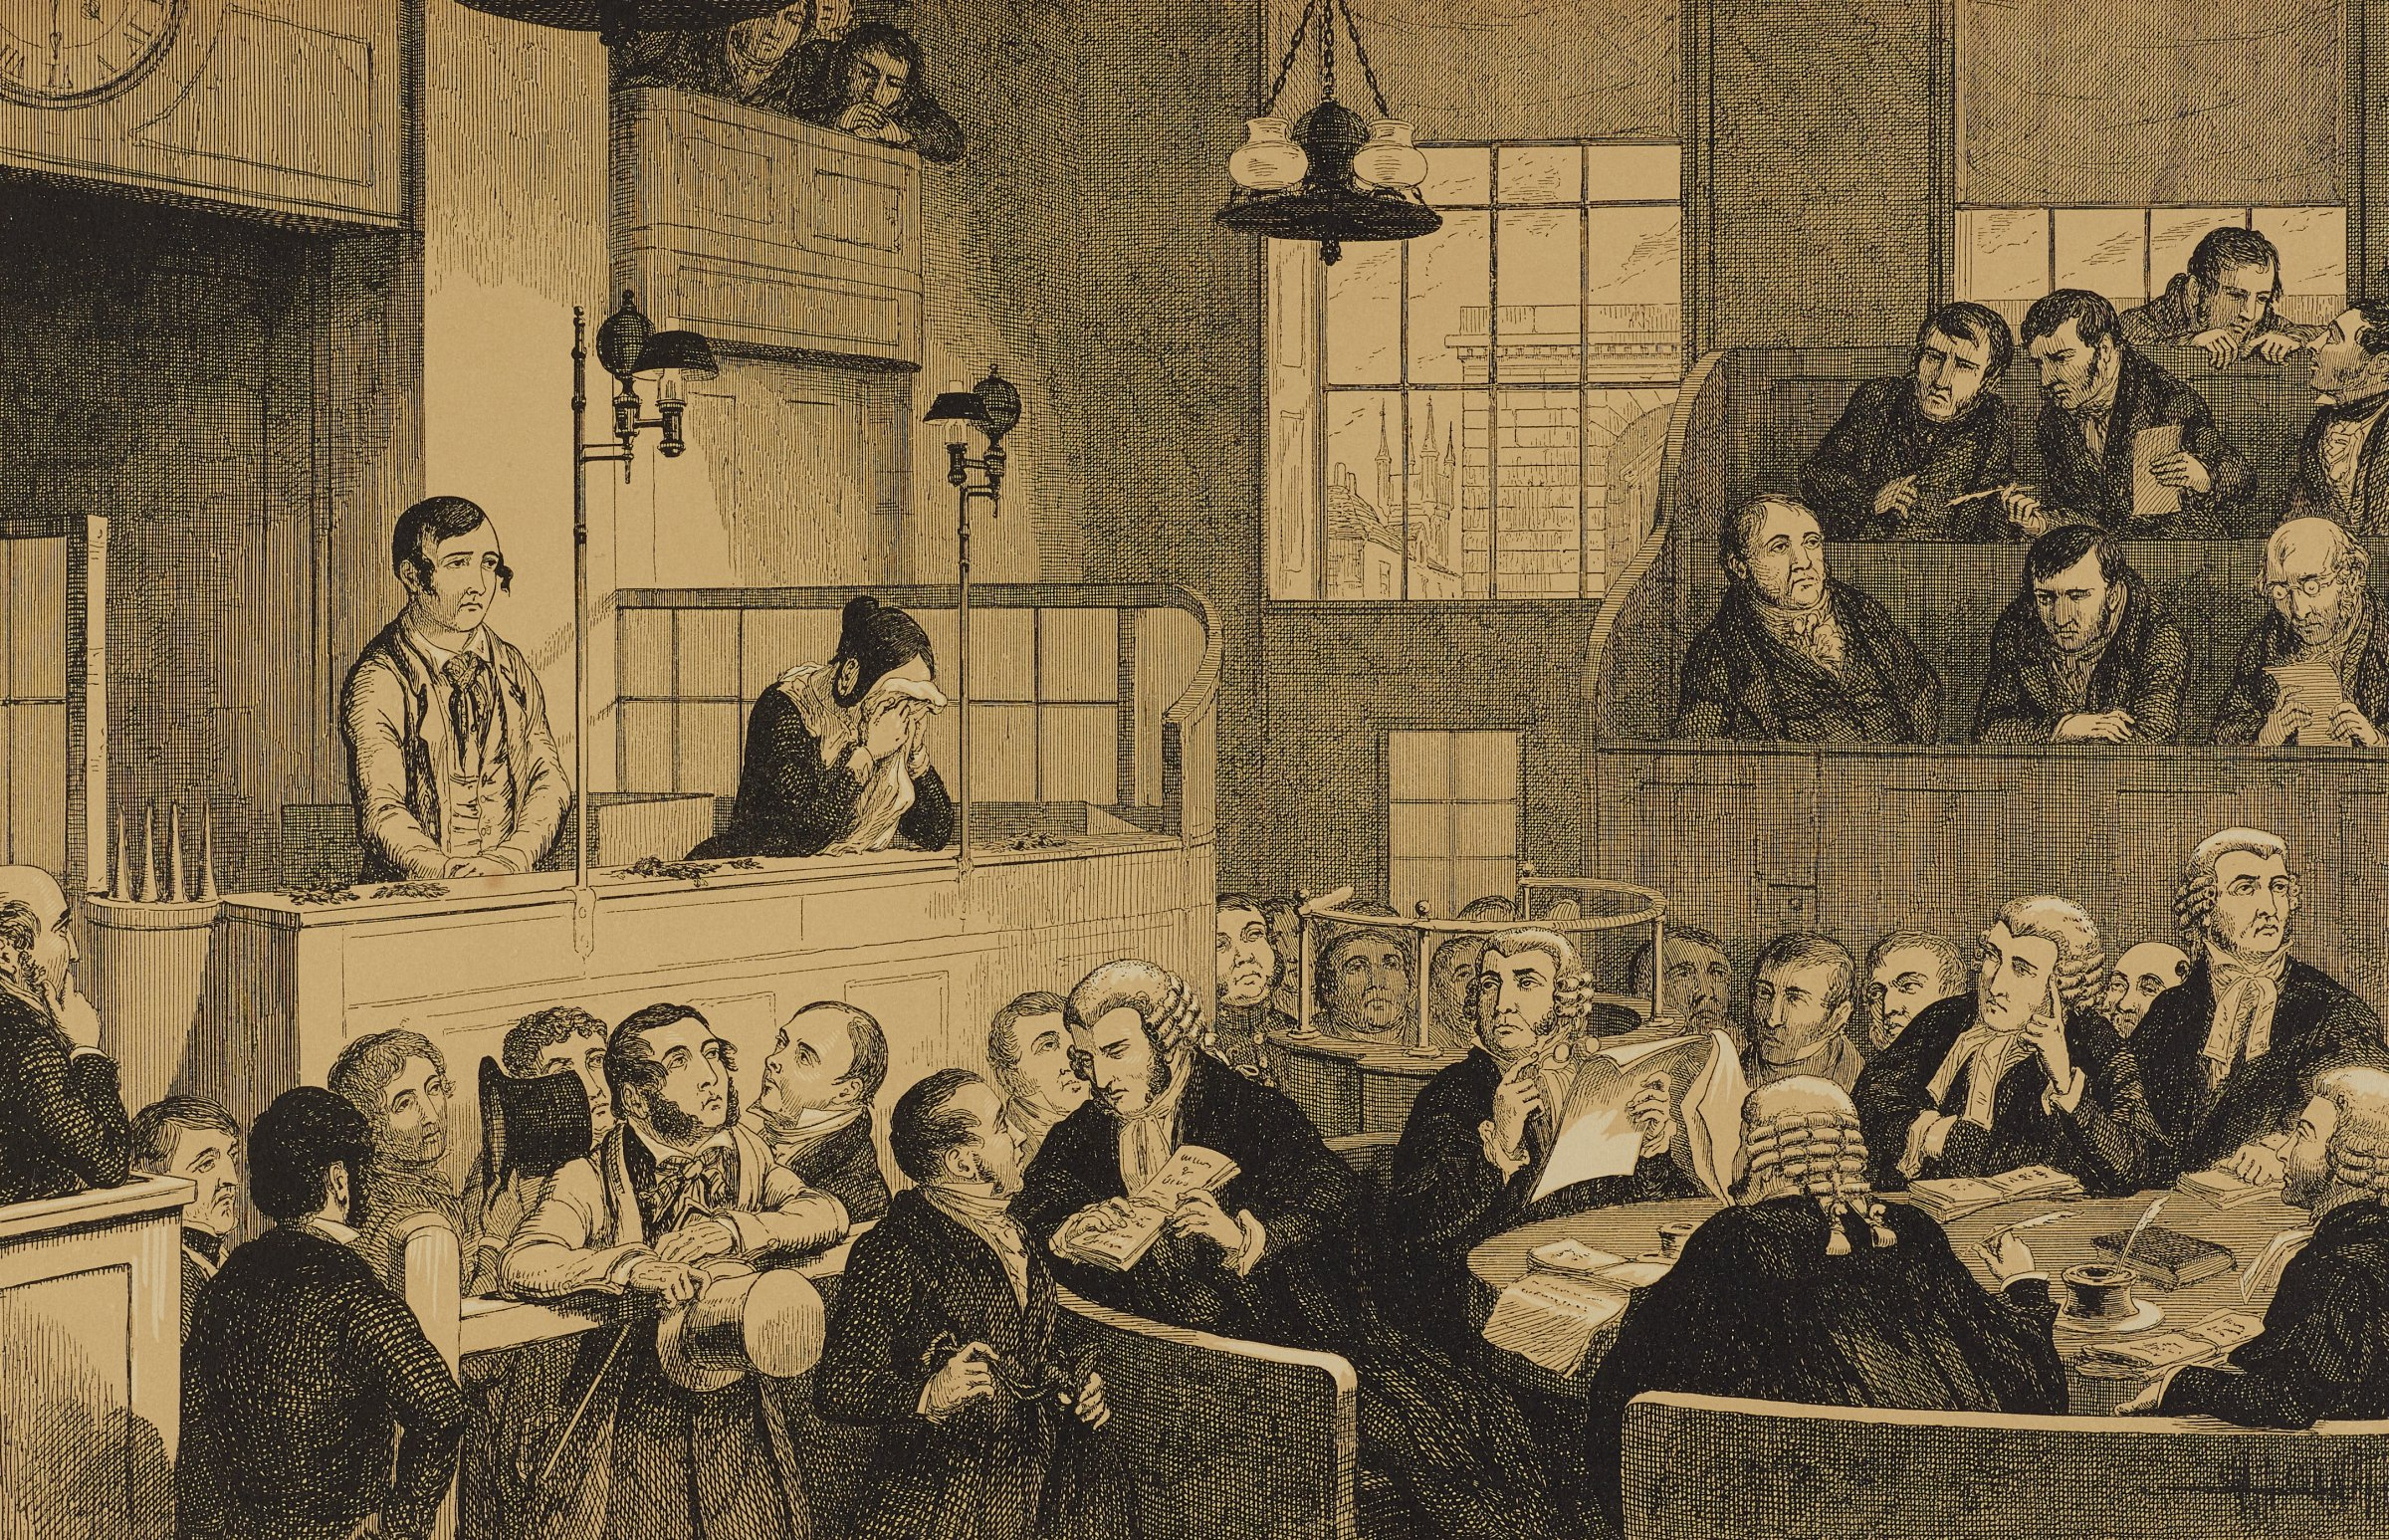 In a court room, judges sit at a round table in the lower right. A young man stands on the left as a woman beside him cries into a handkerchief.